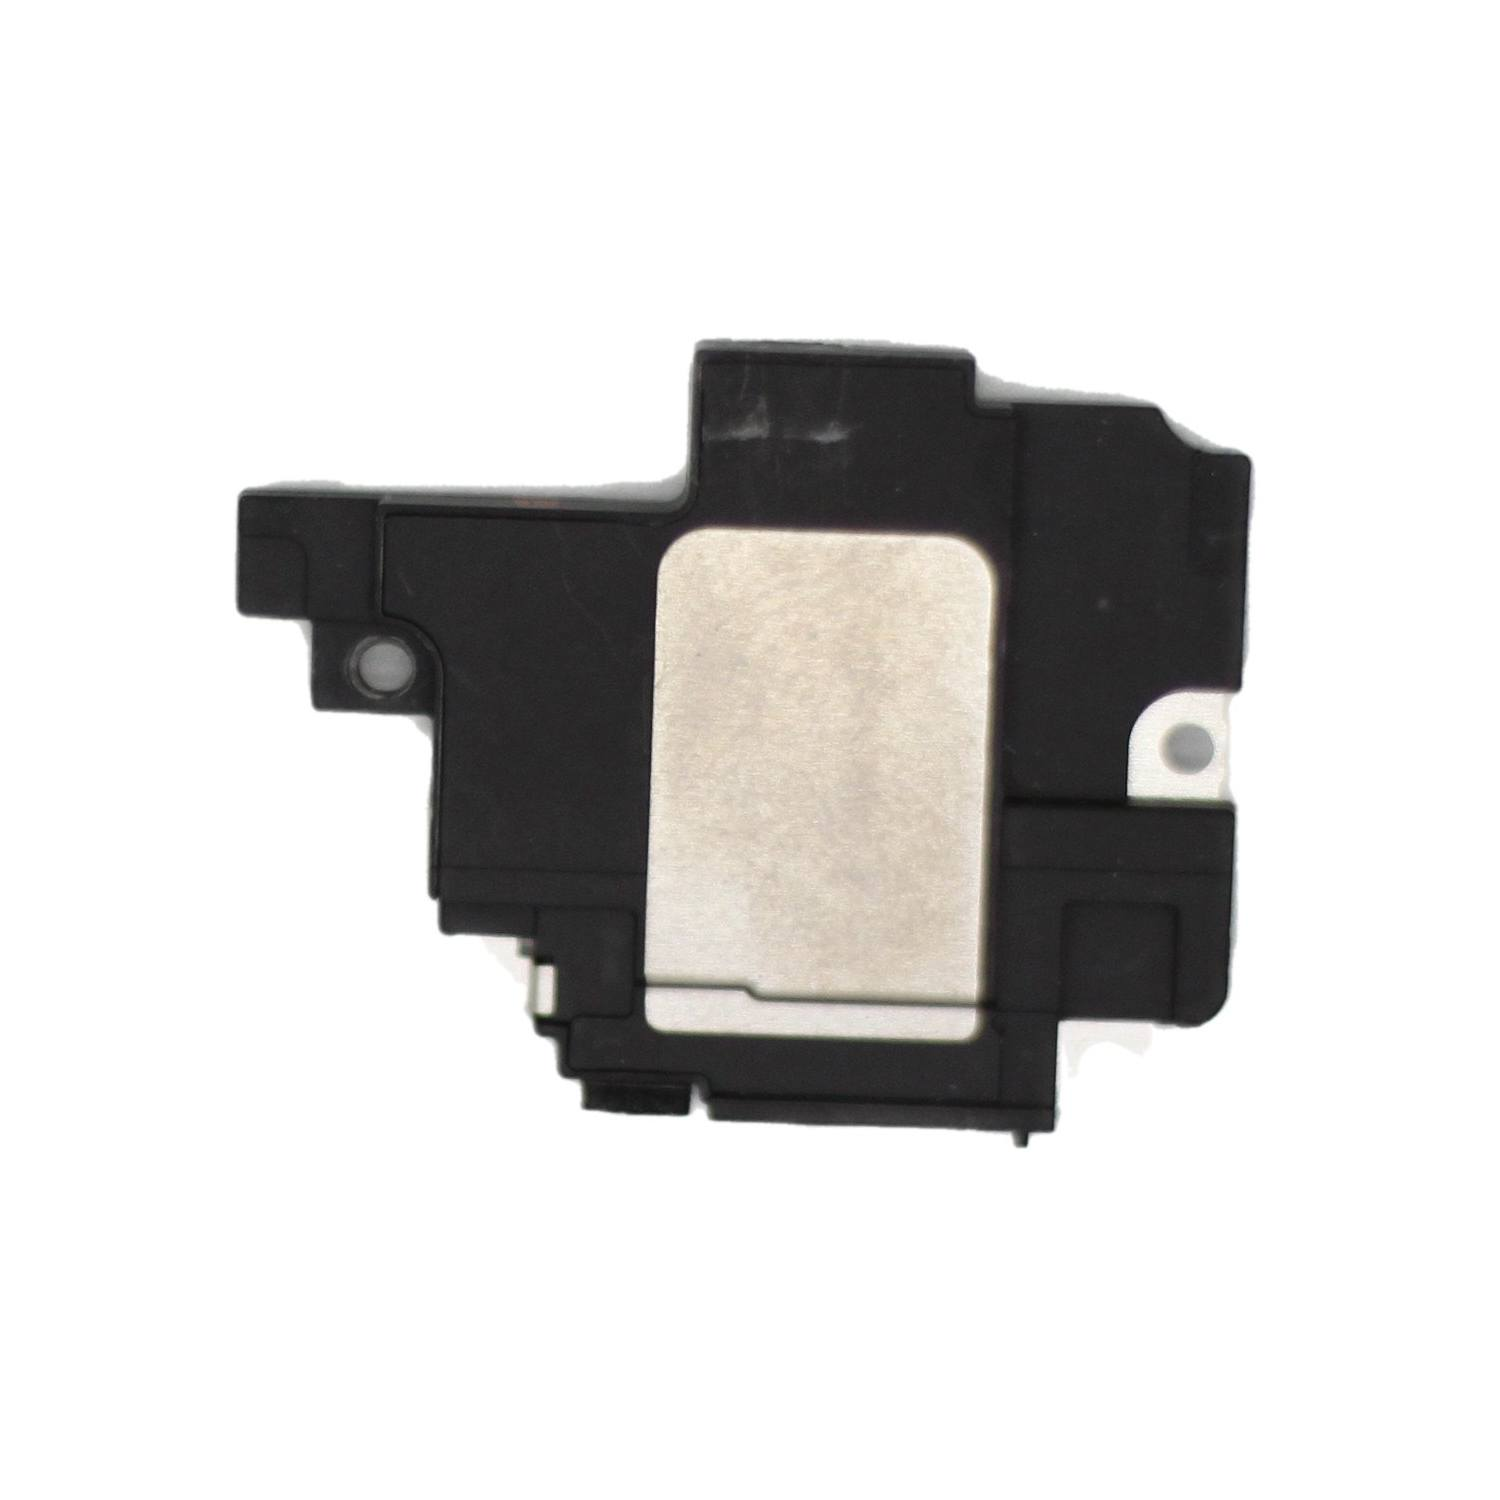 New Loud Speaker Ringer Buzzer replacement for iPhone XR A1984 A2106 A2108 Pic0